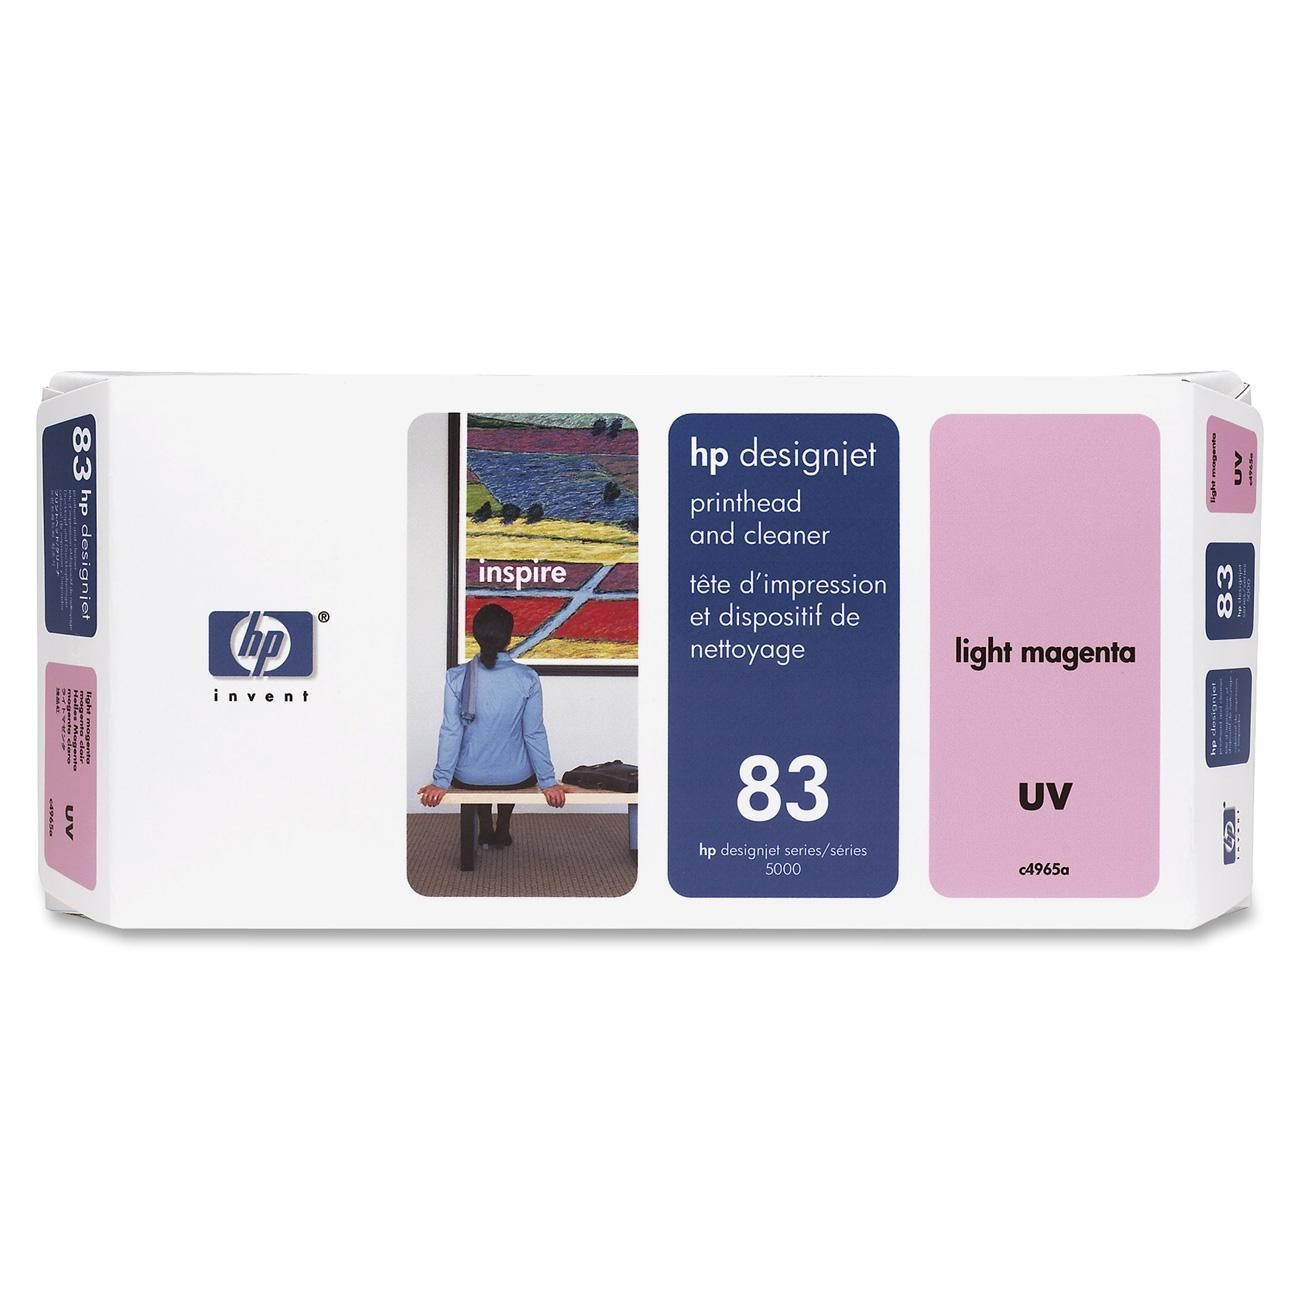 HP 83 Light Magenta Printhead and Cleaner C4965A